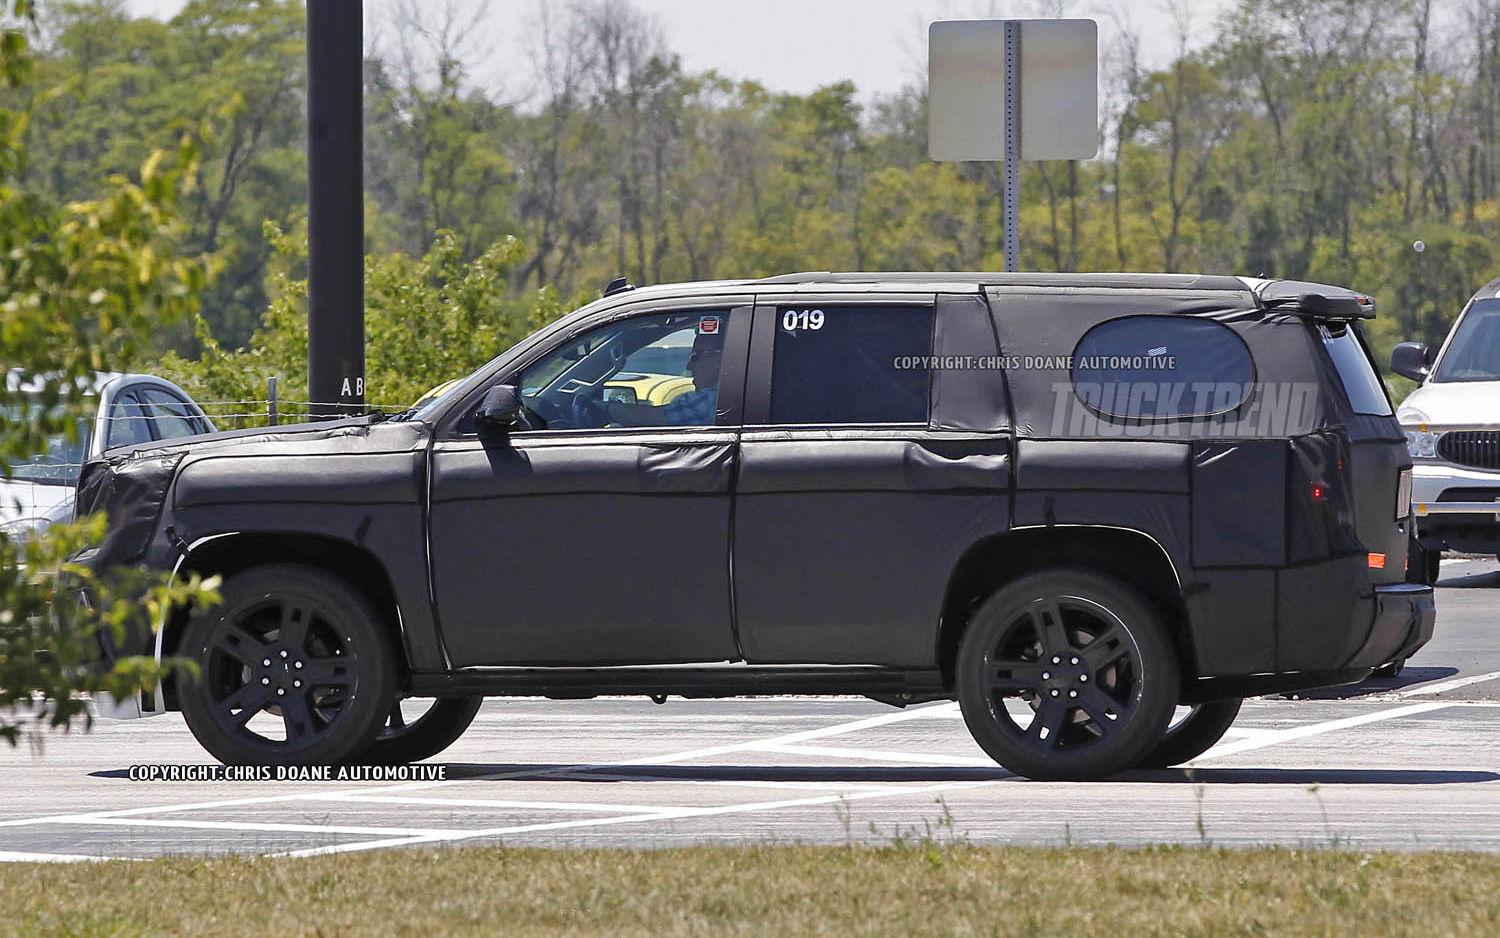 2018 GMC Yukon Hybrid photo - 3